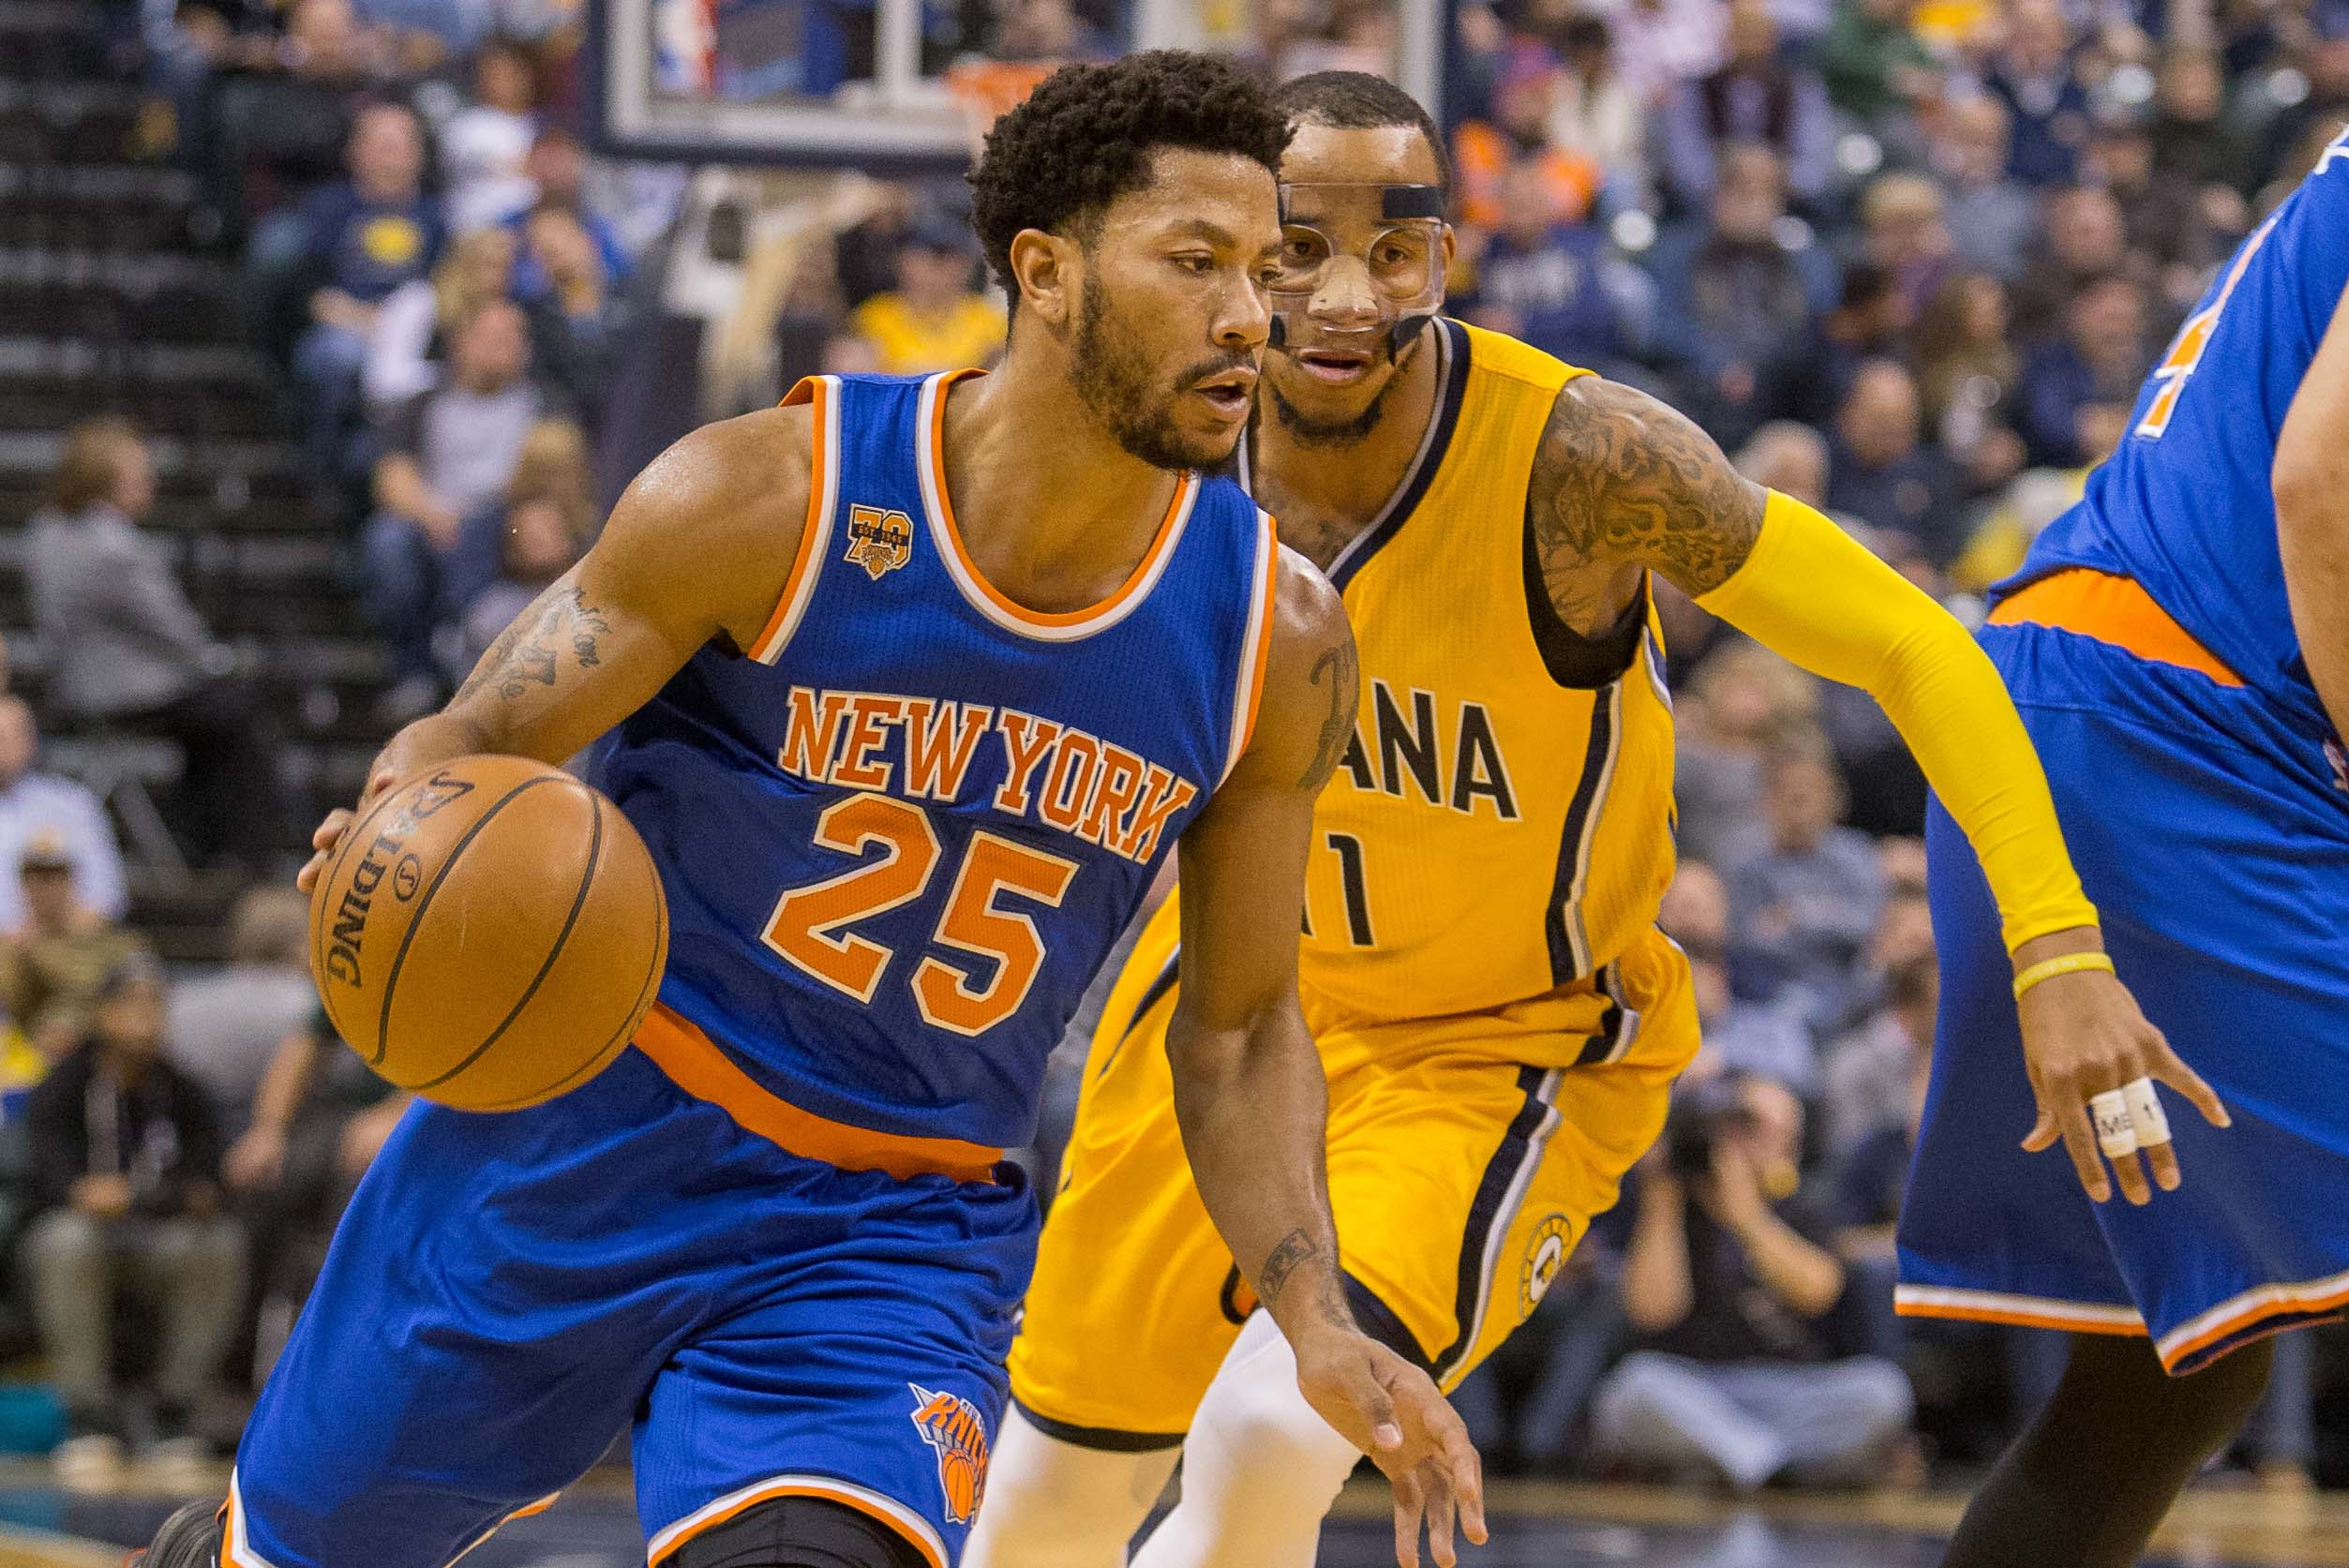 Derrick Rose misses New York Knicks game for undisclosed reason